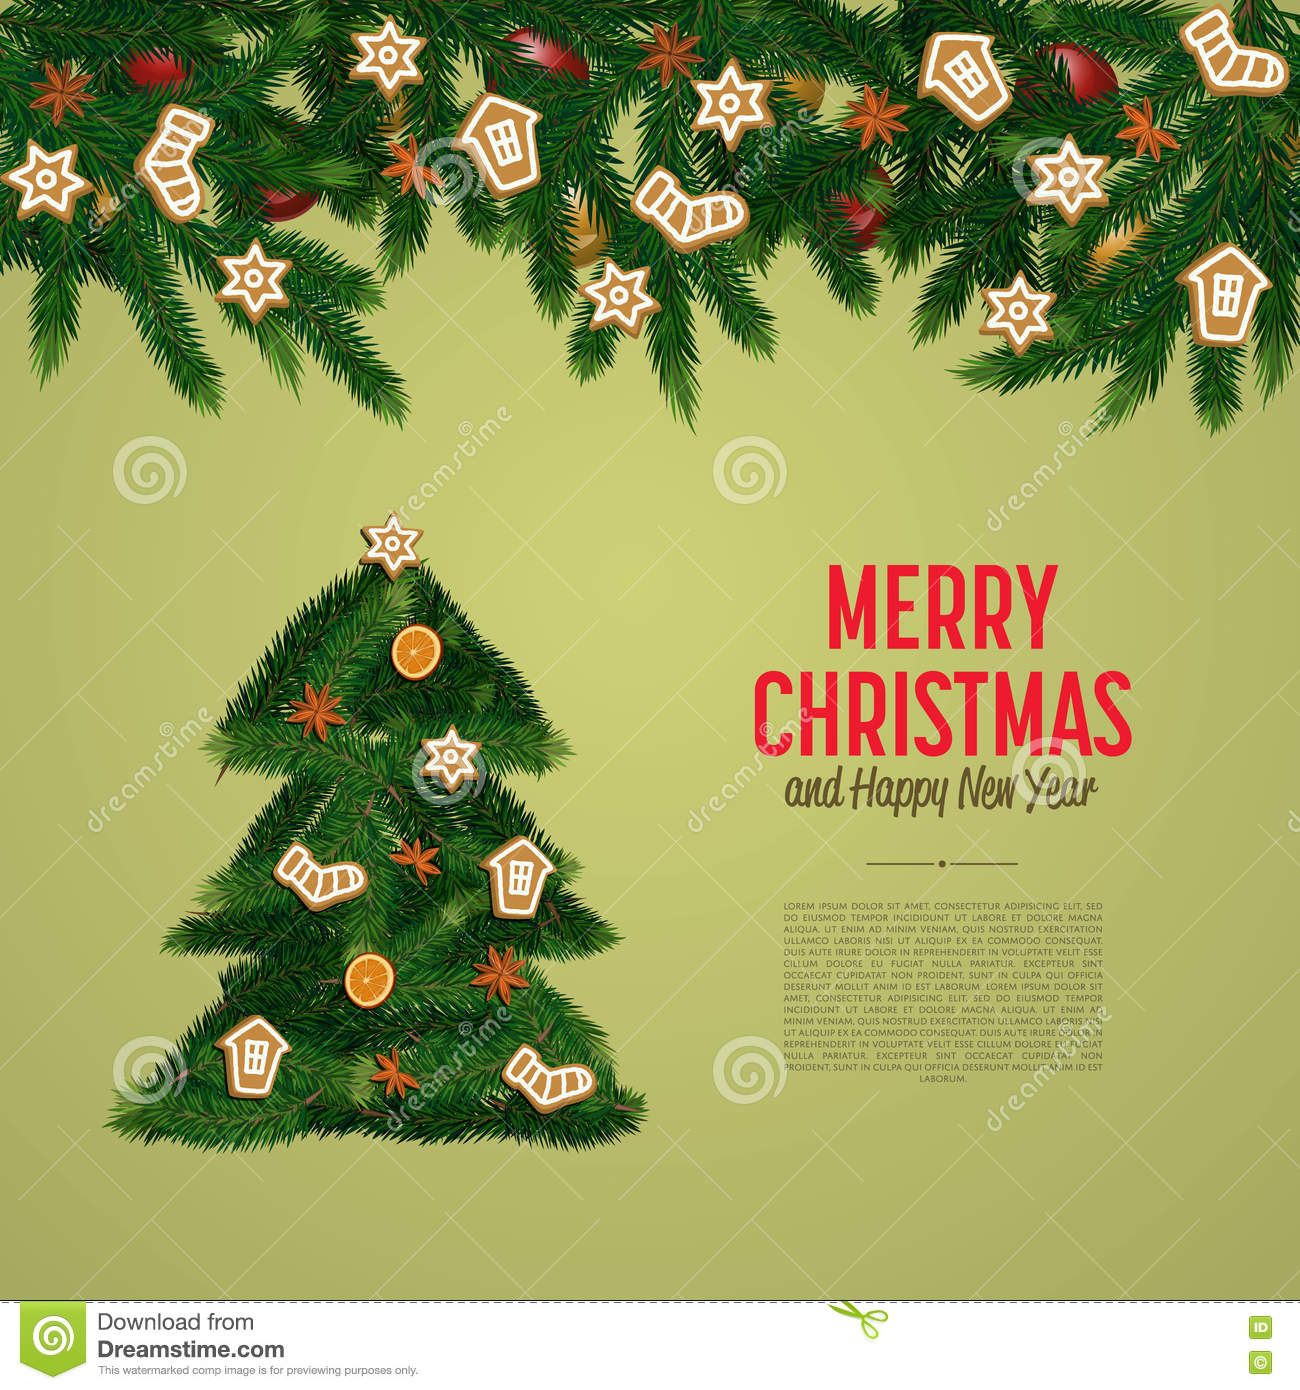 merry christmas and happy new year greeting card vector illustration xmas congratulation with decorated christmas tree and space for greeting message